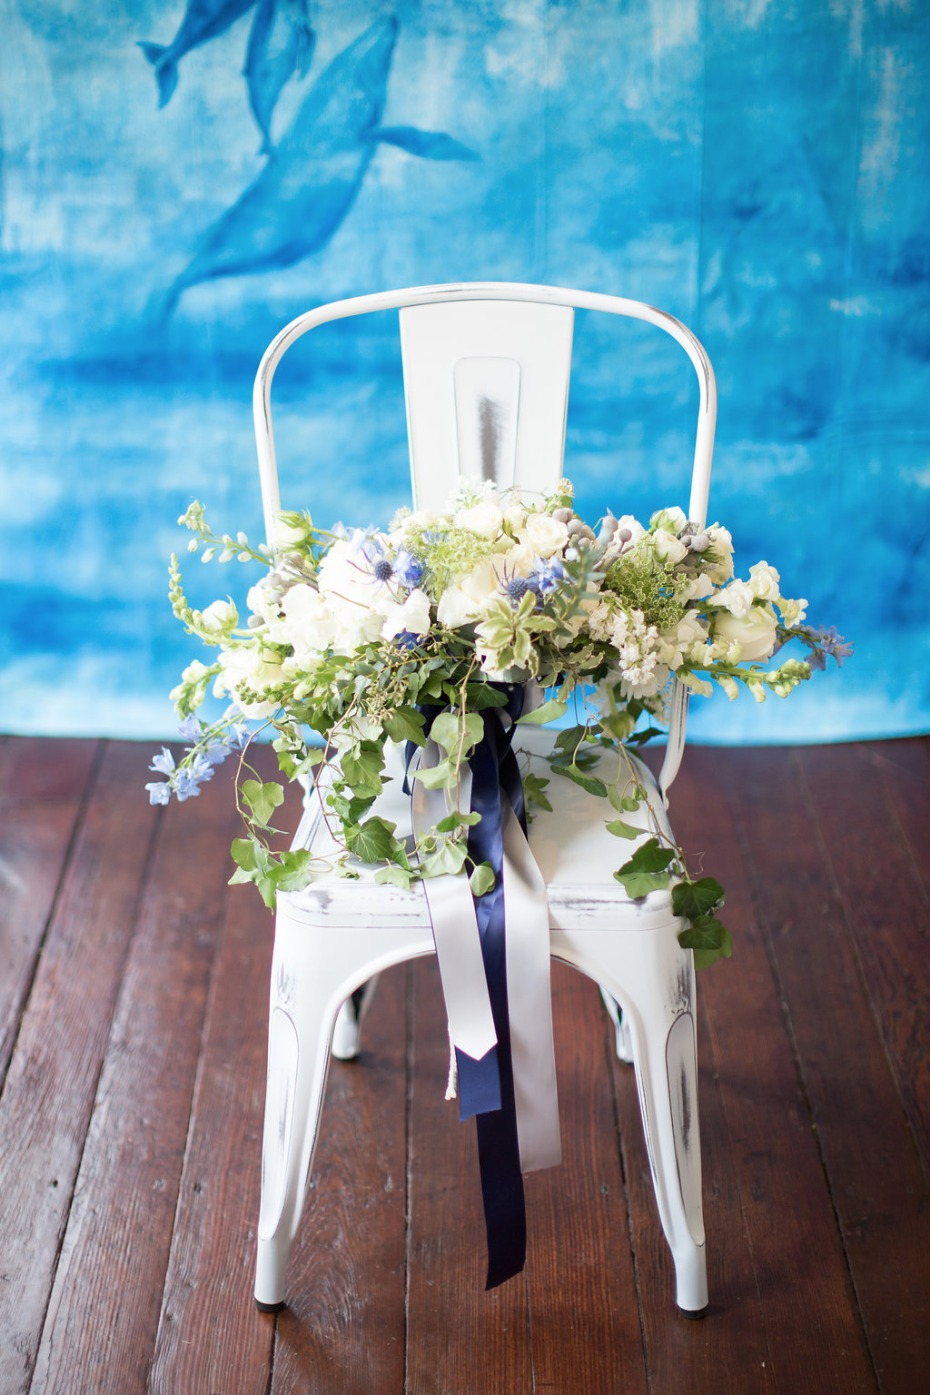 Blue and white bouquet with ribbons